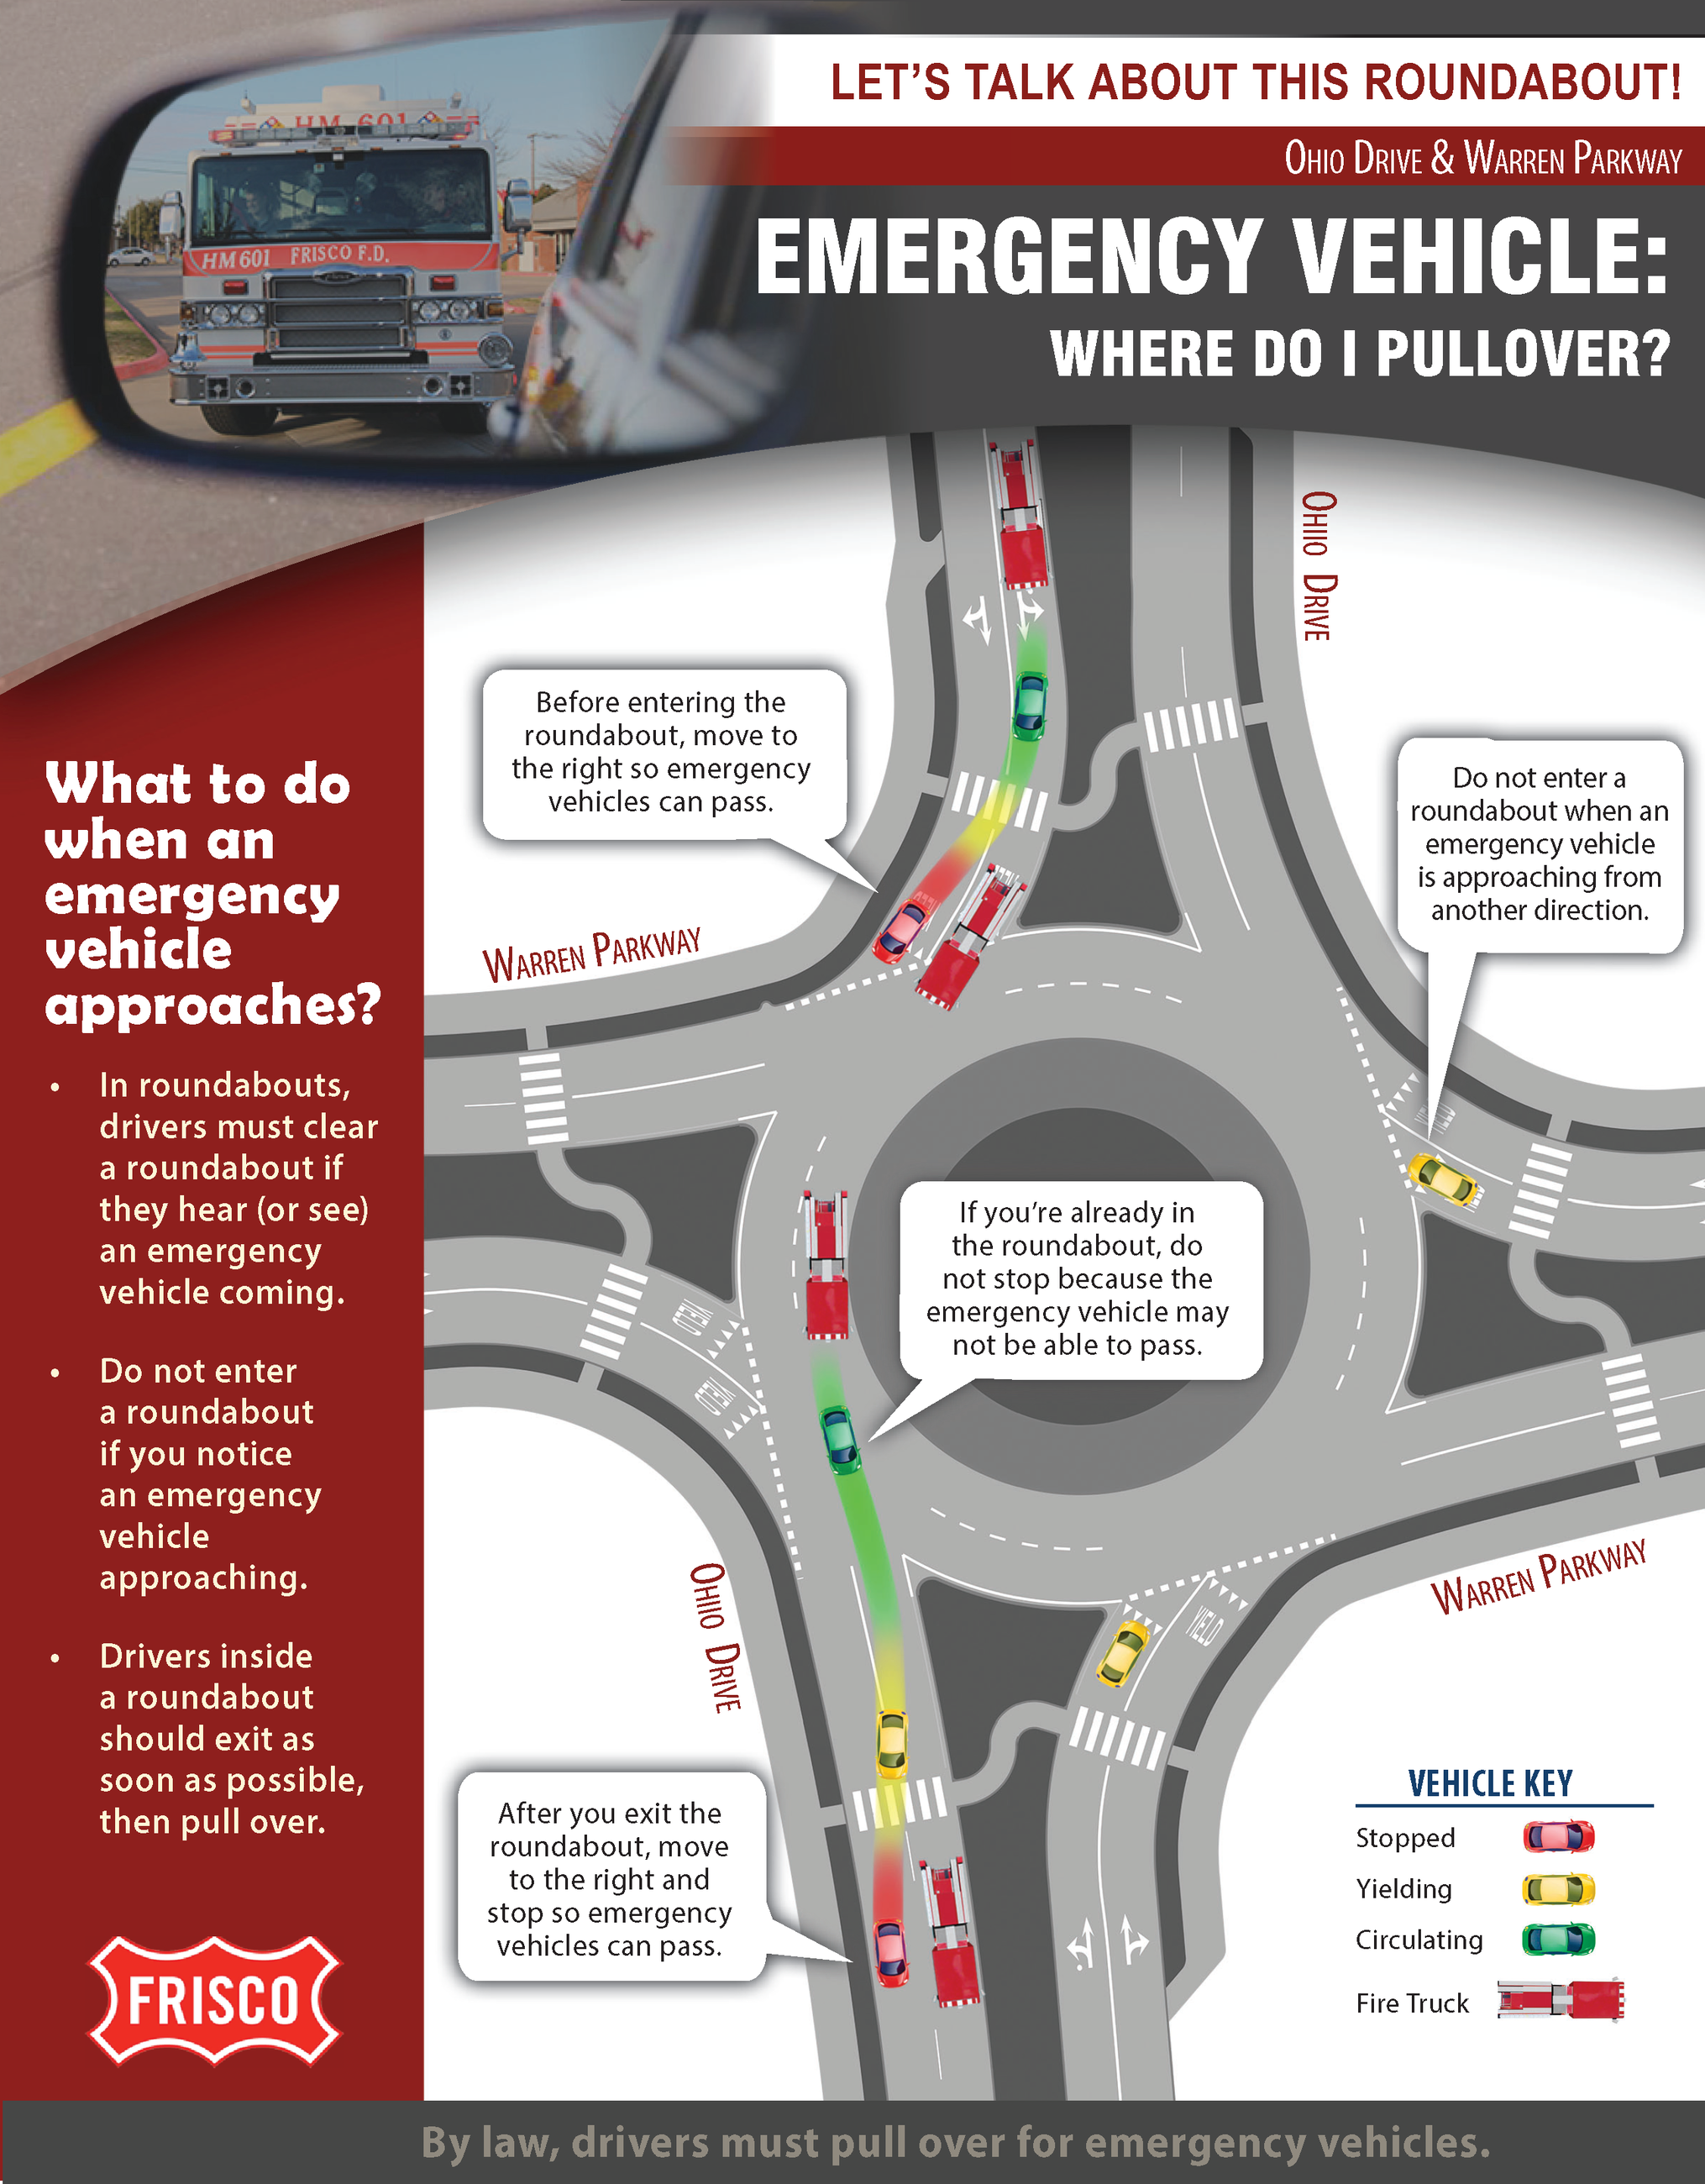 Yield to Emergency Vehicles in a Roundabout